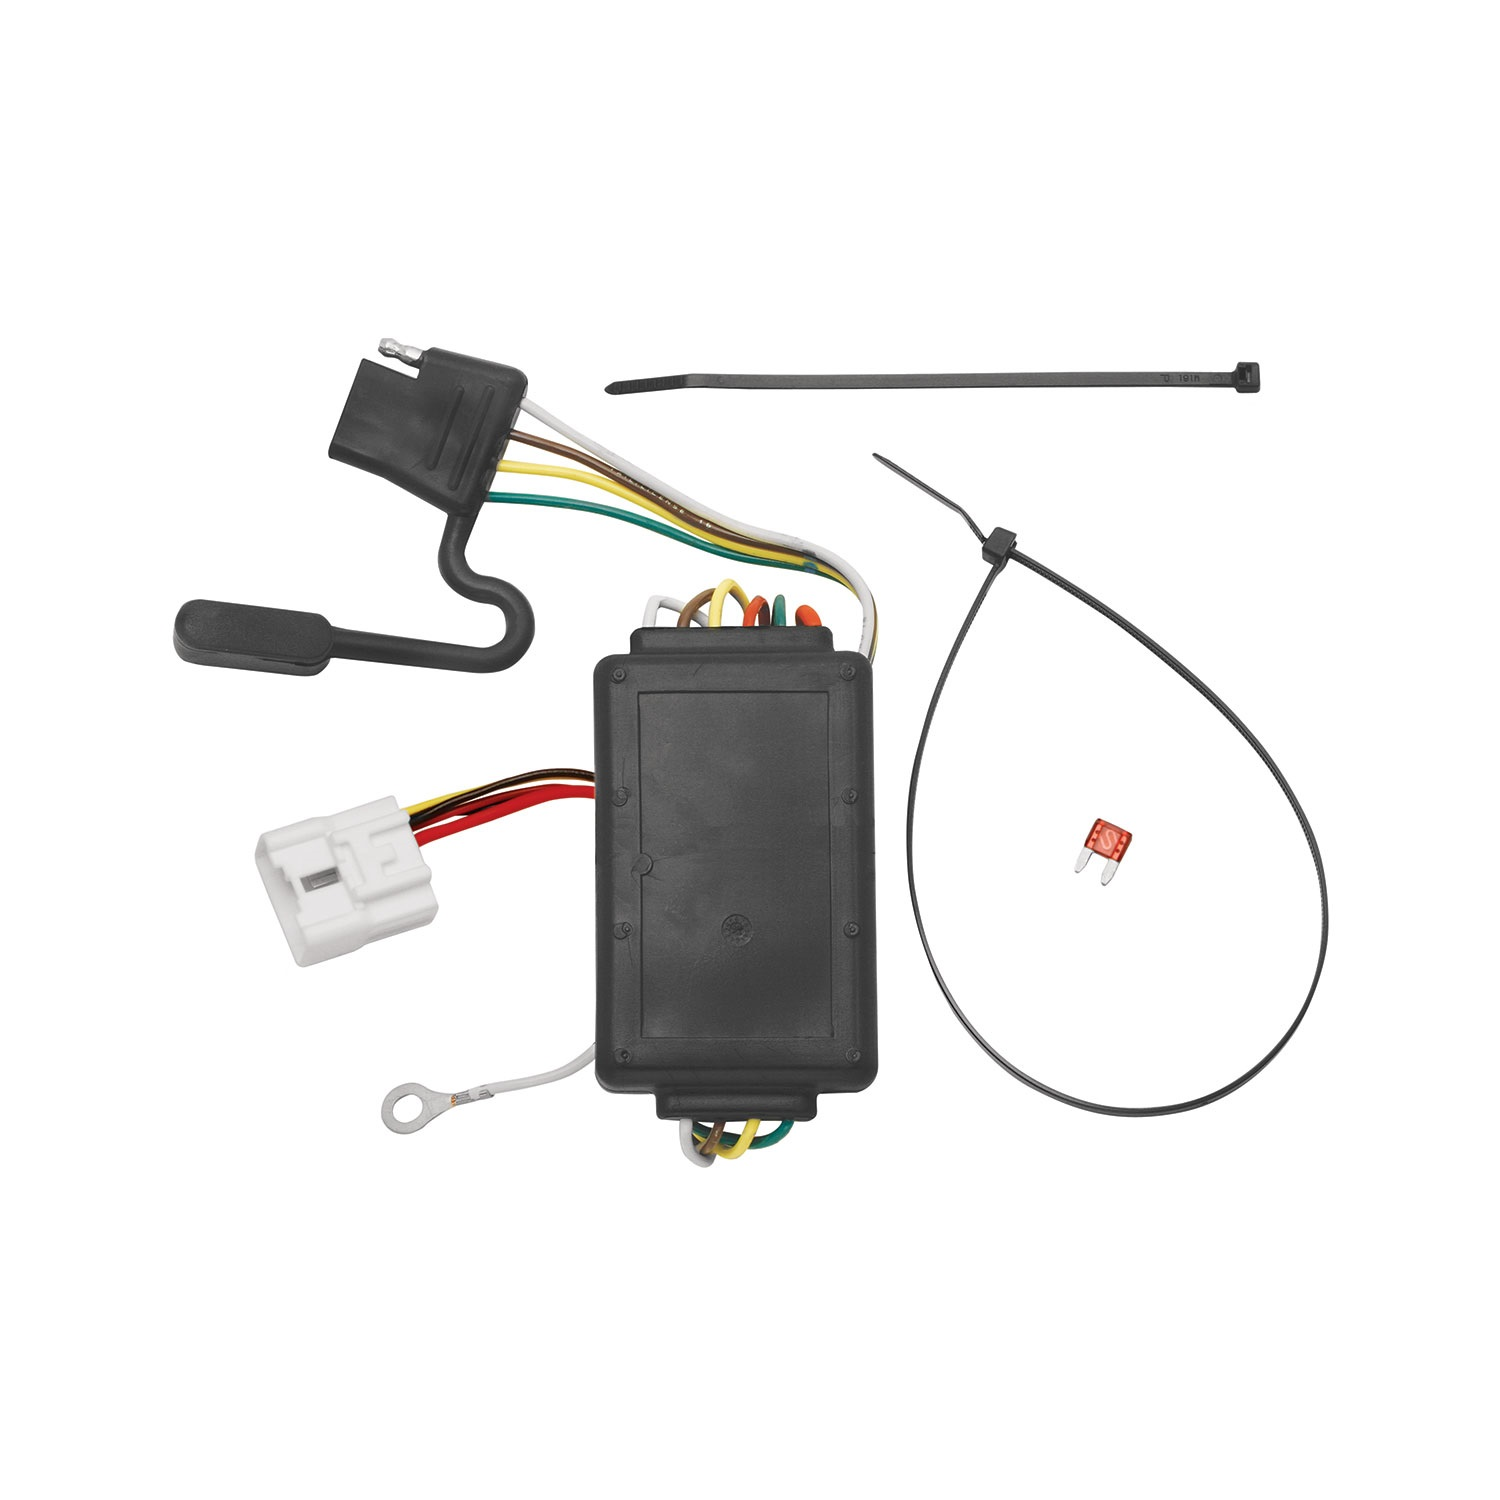 Replacement Oem Tow Package Harness Replacement Auto Part, Easy to Install